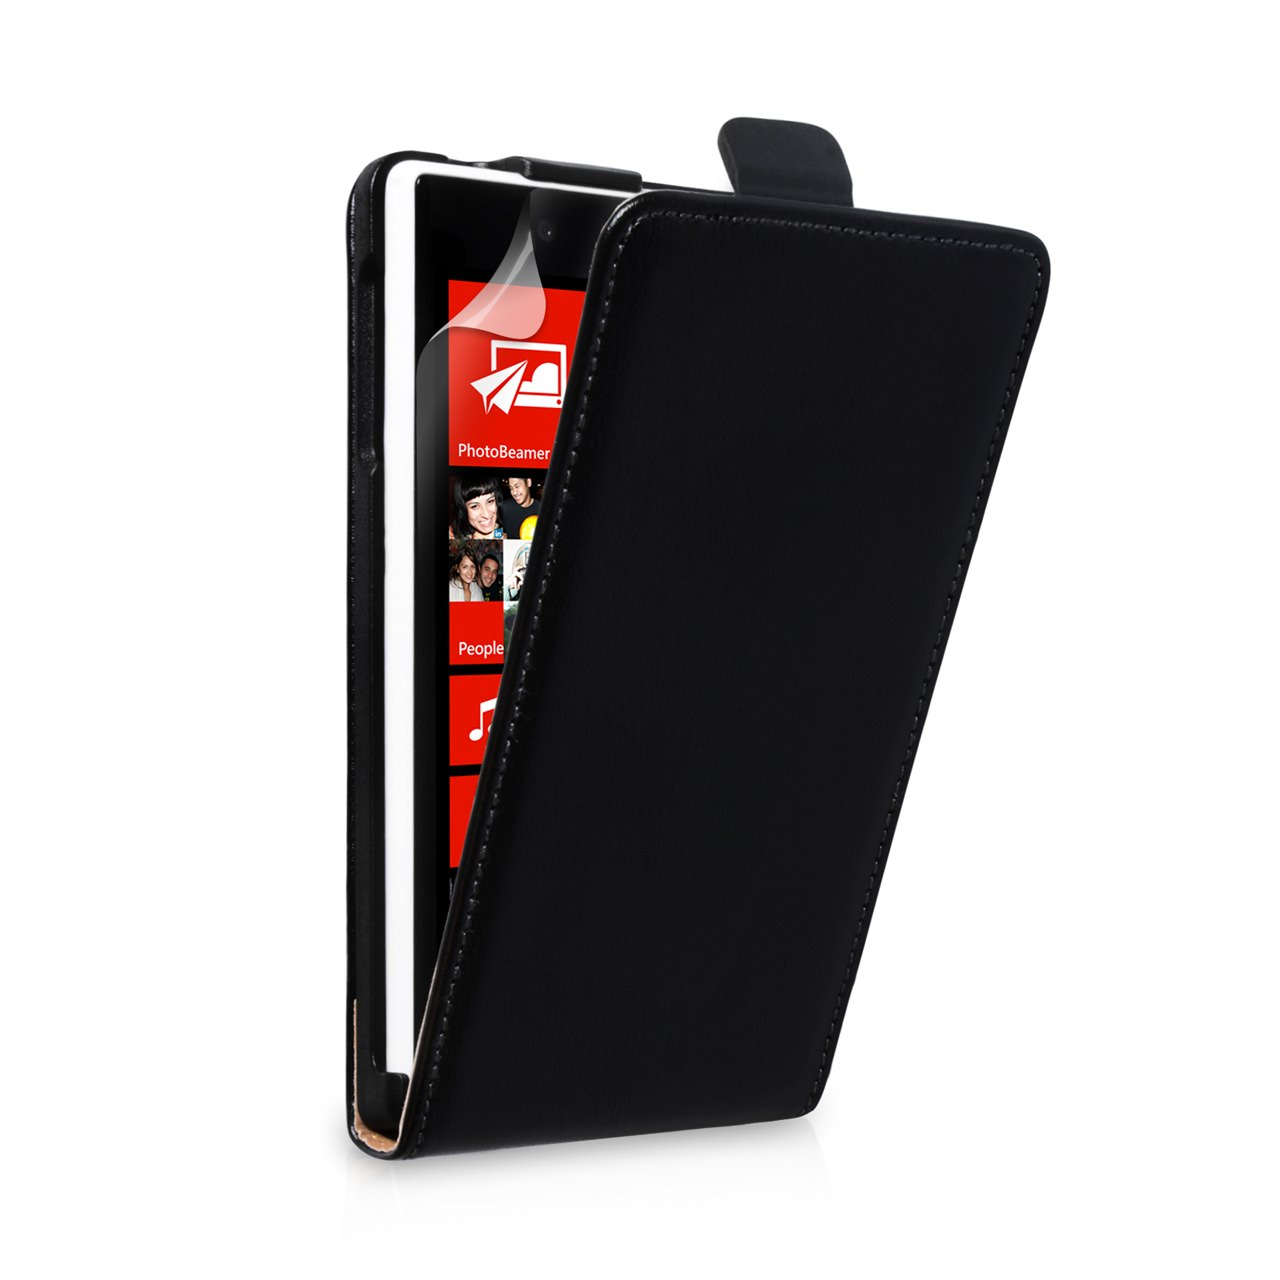 YouSave Accessories Nokia Lumia 720 Real Leather Flip Case - Black